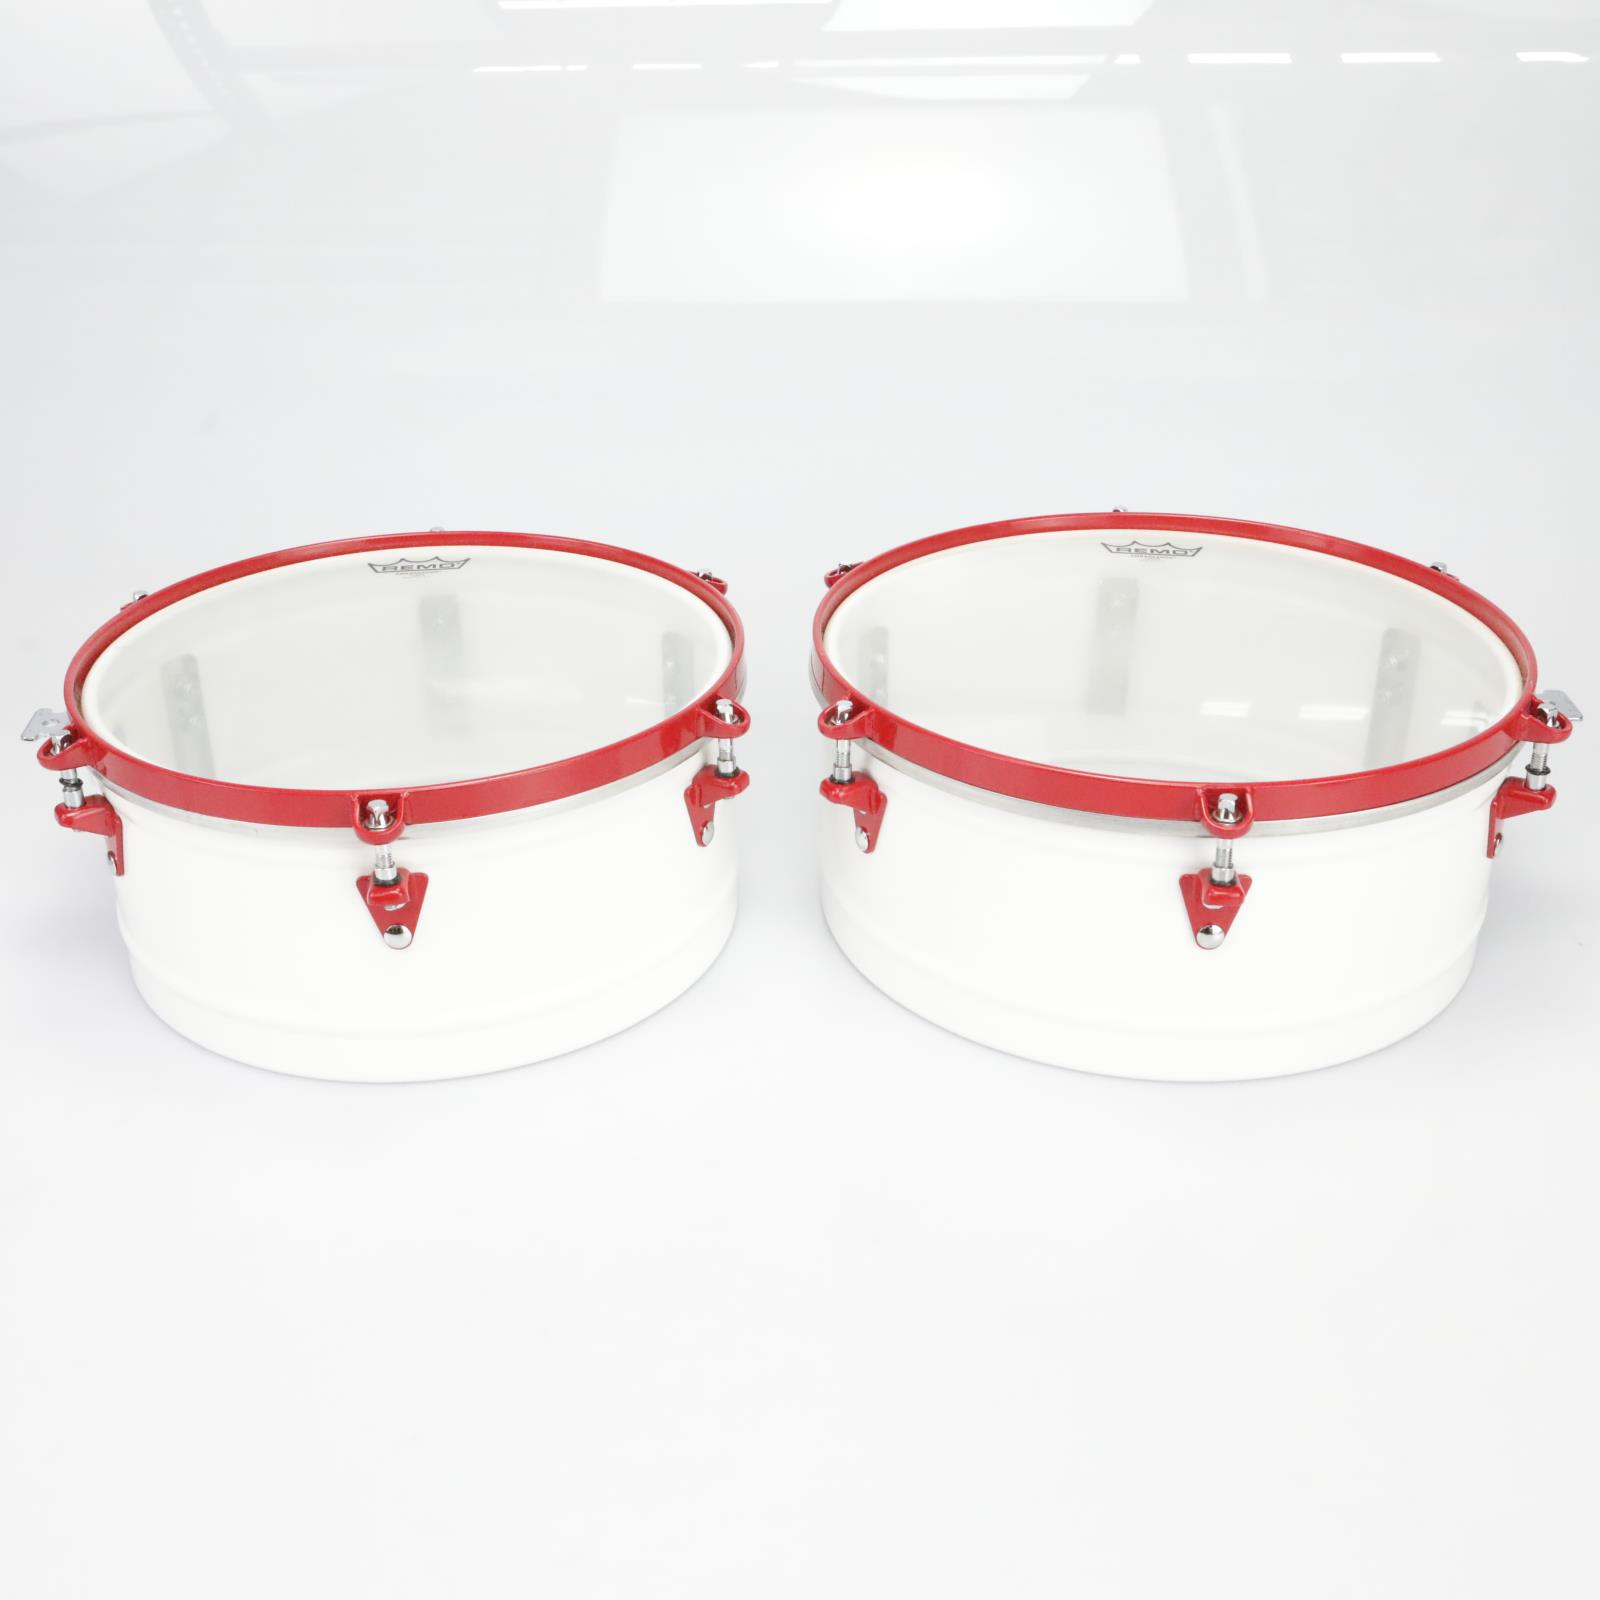 "LP 14"" & 15"" Timbale Set w/ Percussion Extras Rare White w/ Red Hardware #39746"